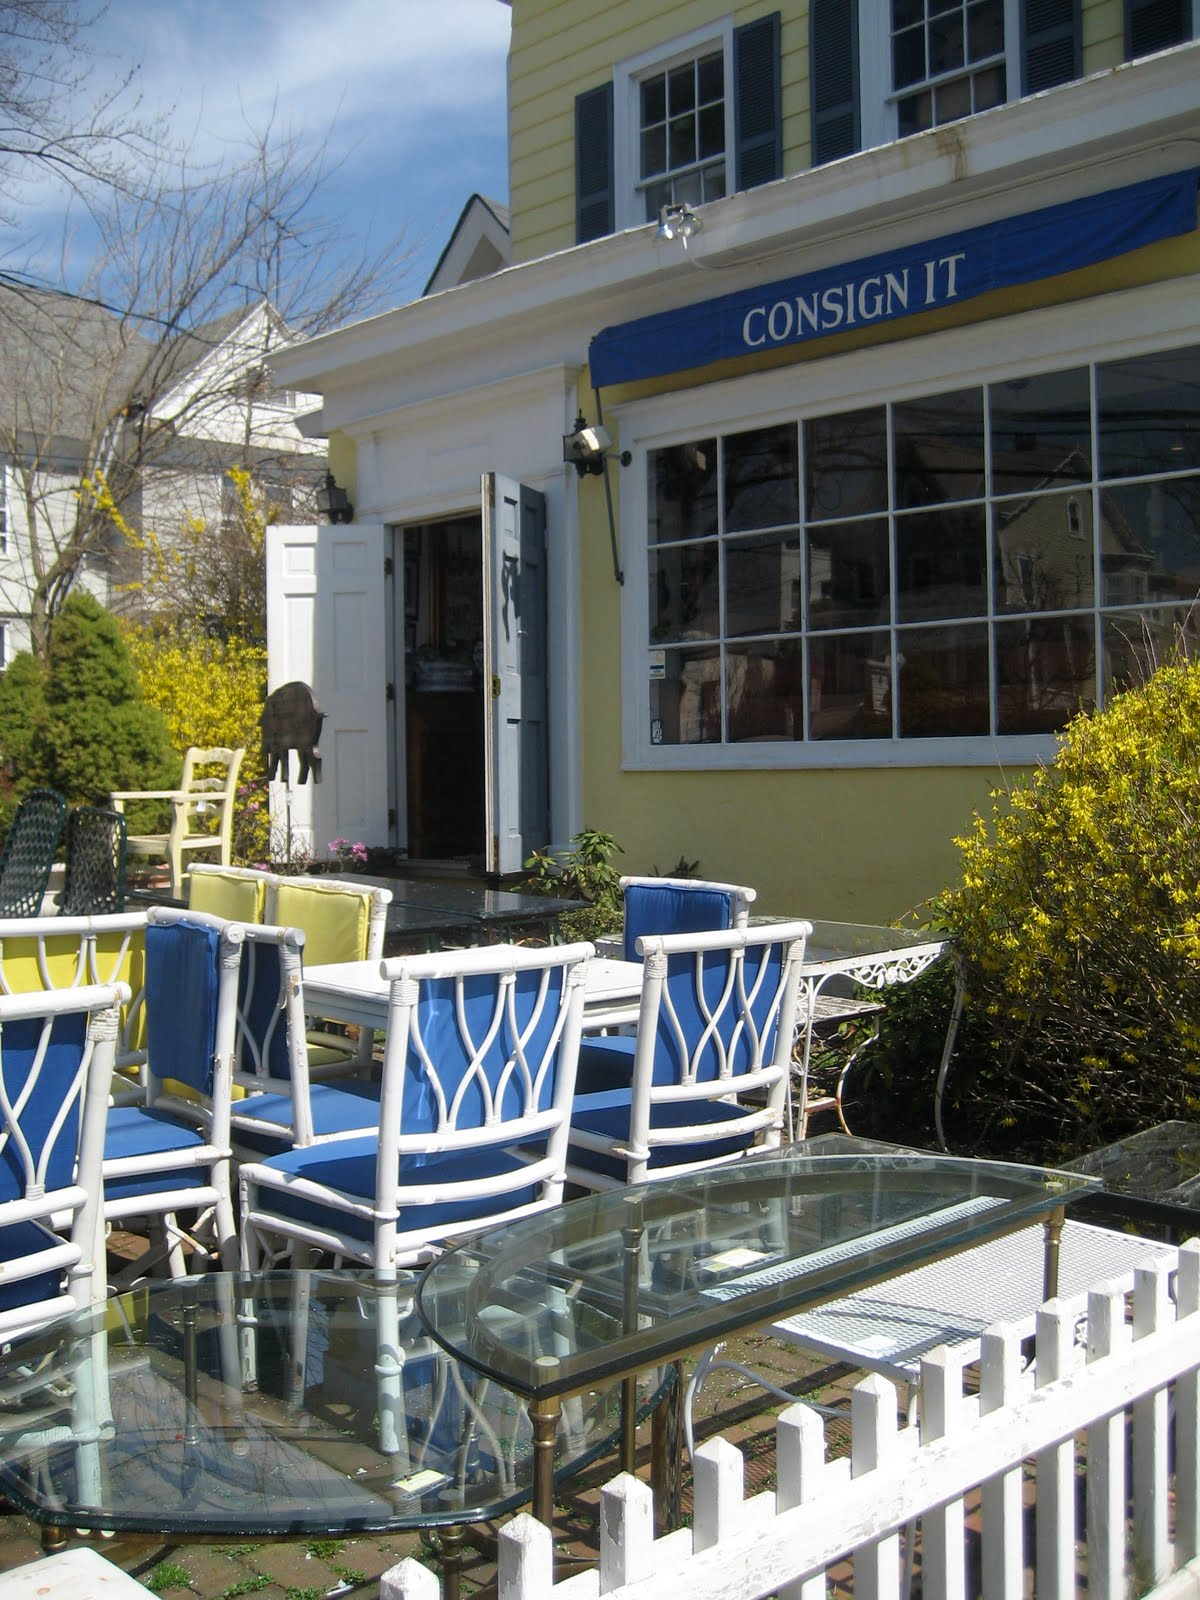 Living It At Home: Consign It